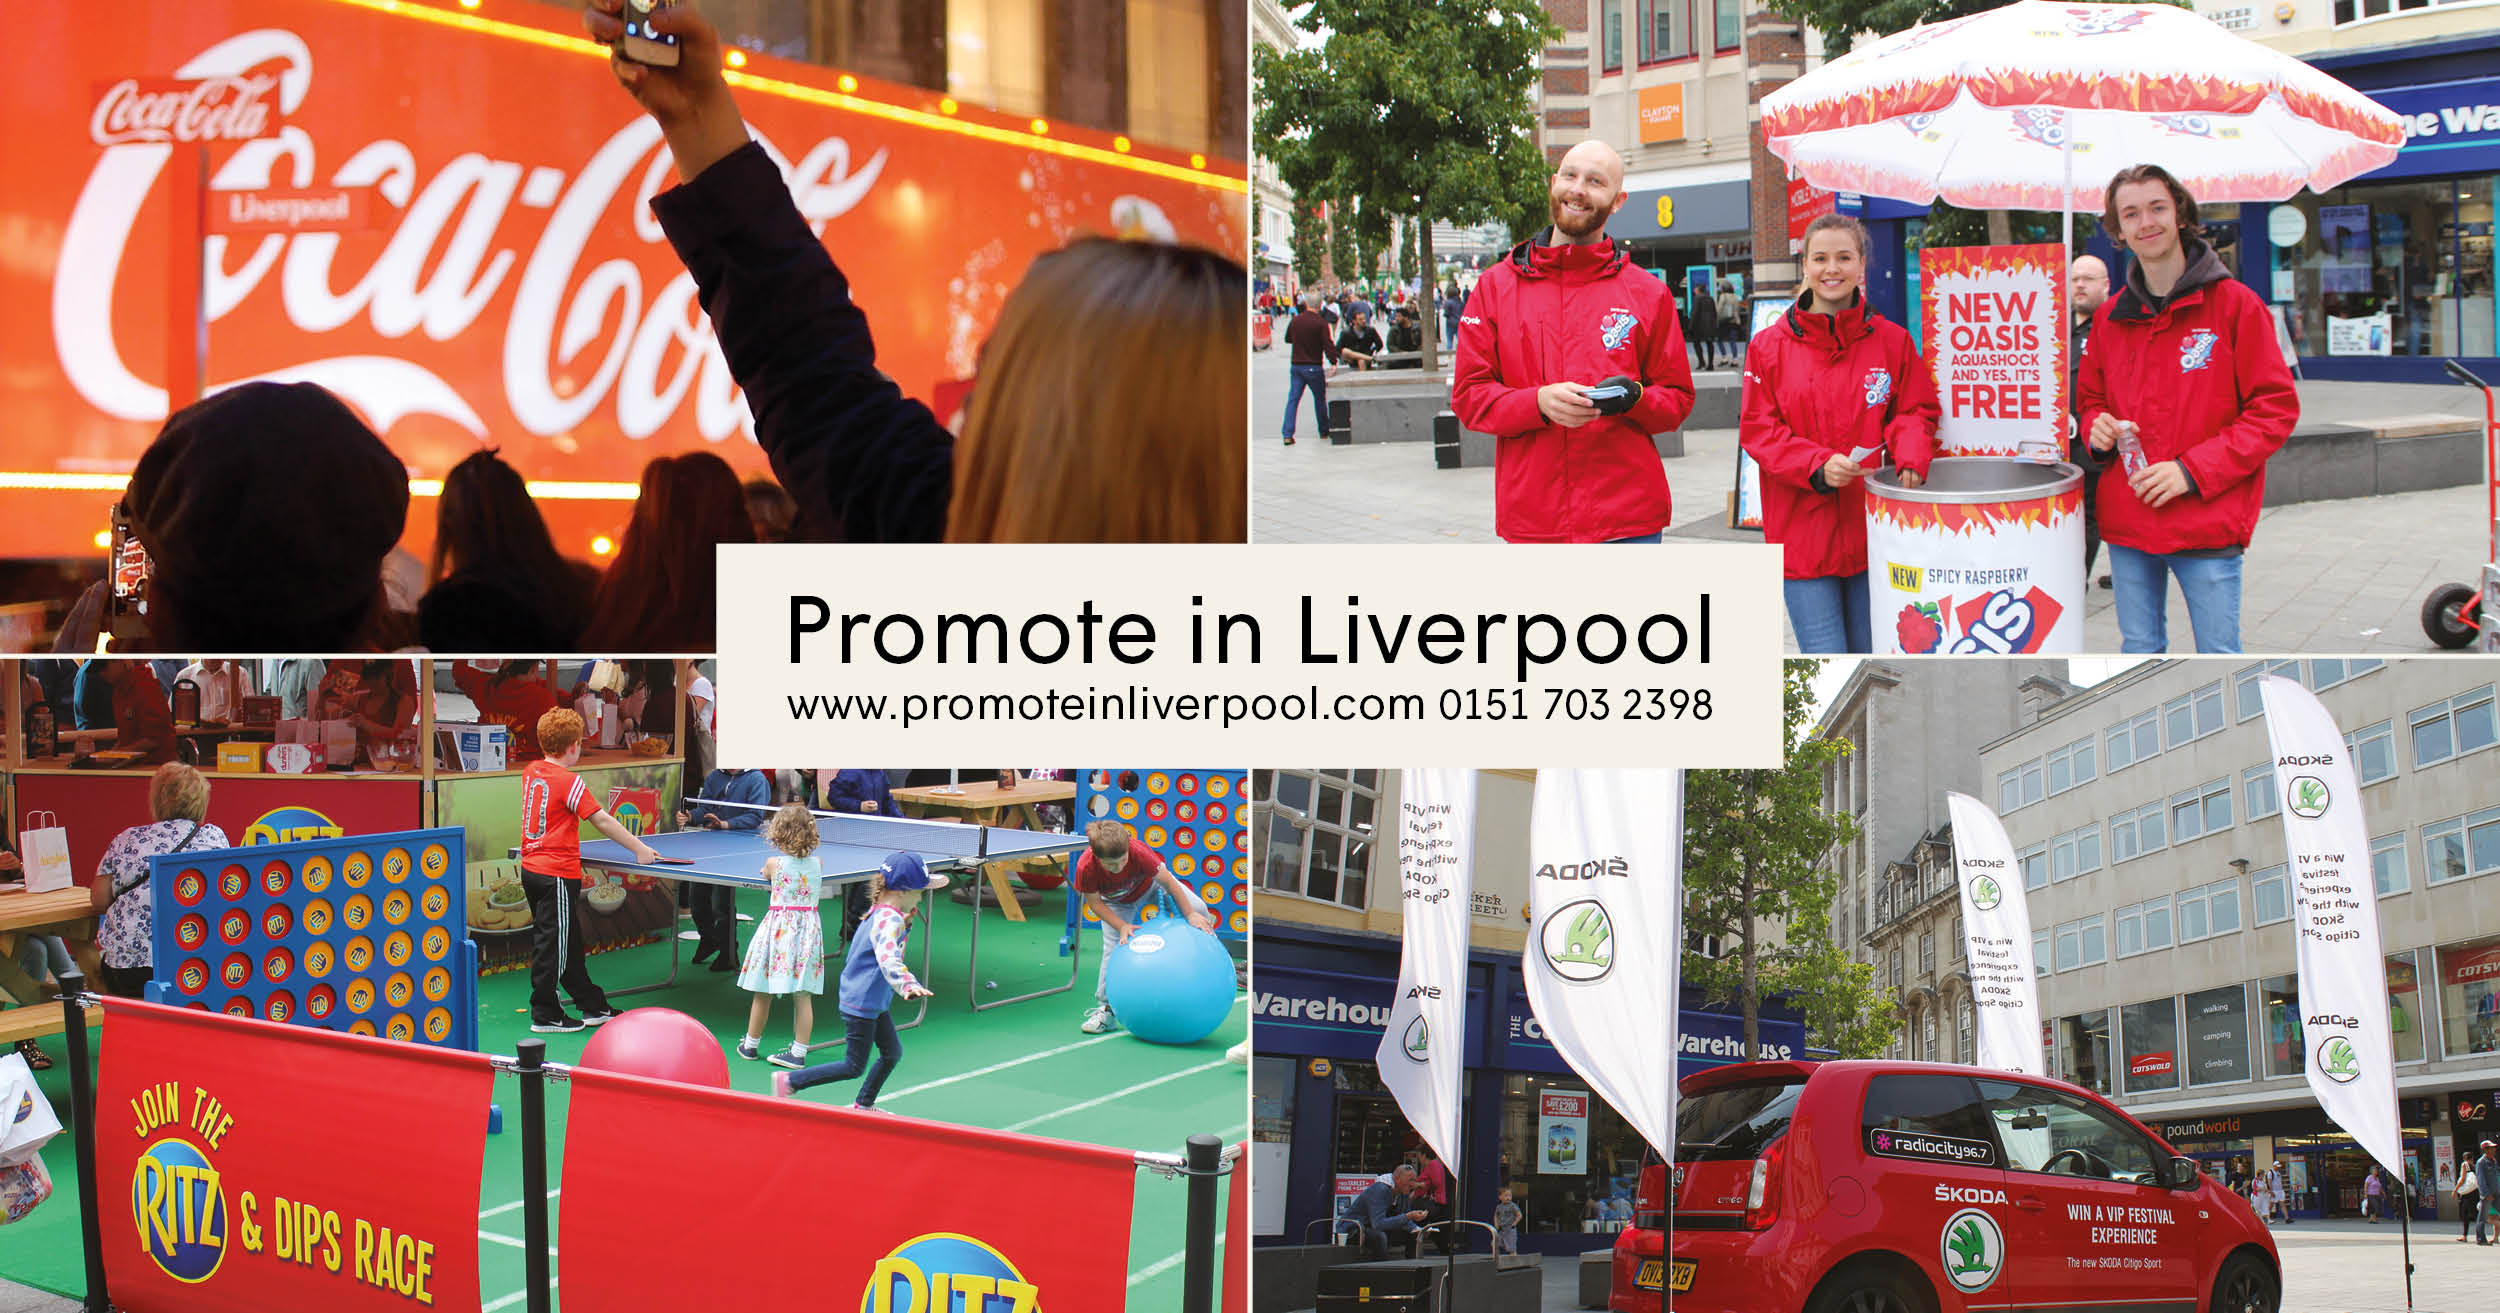 Promote in Liverpool - Socials